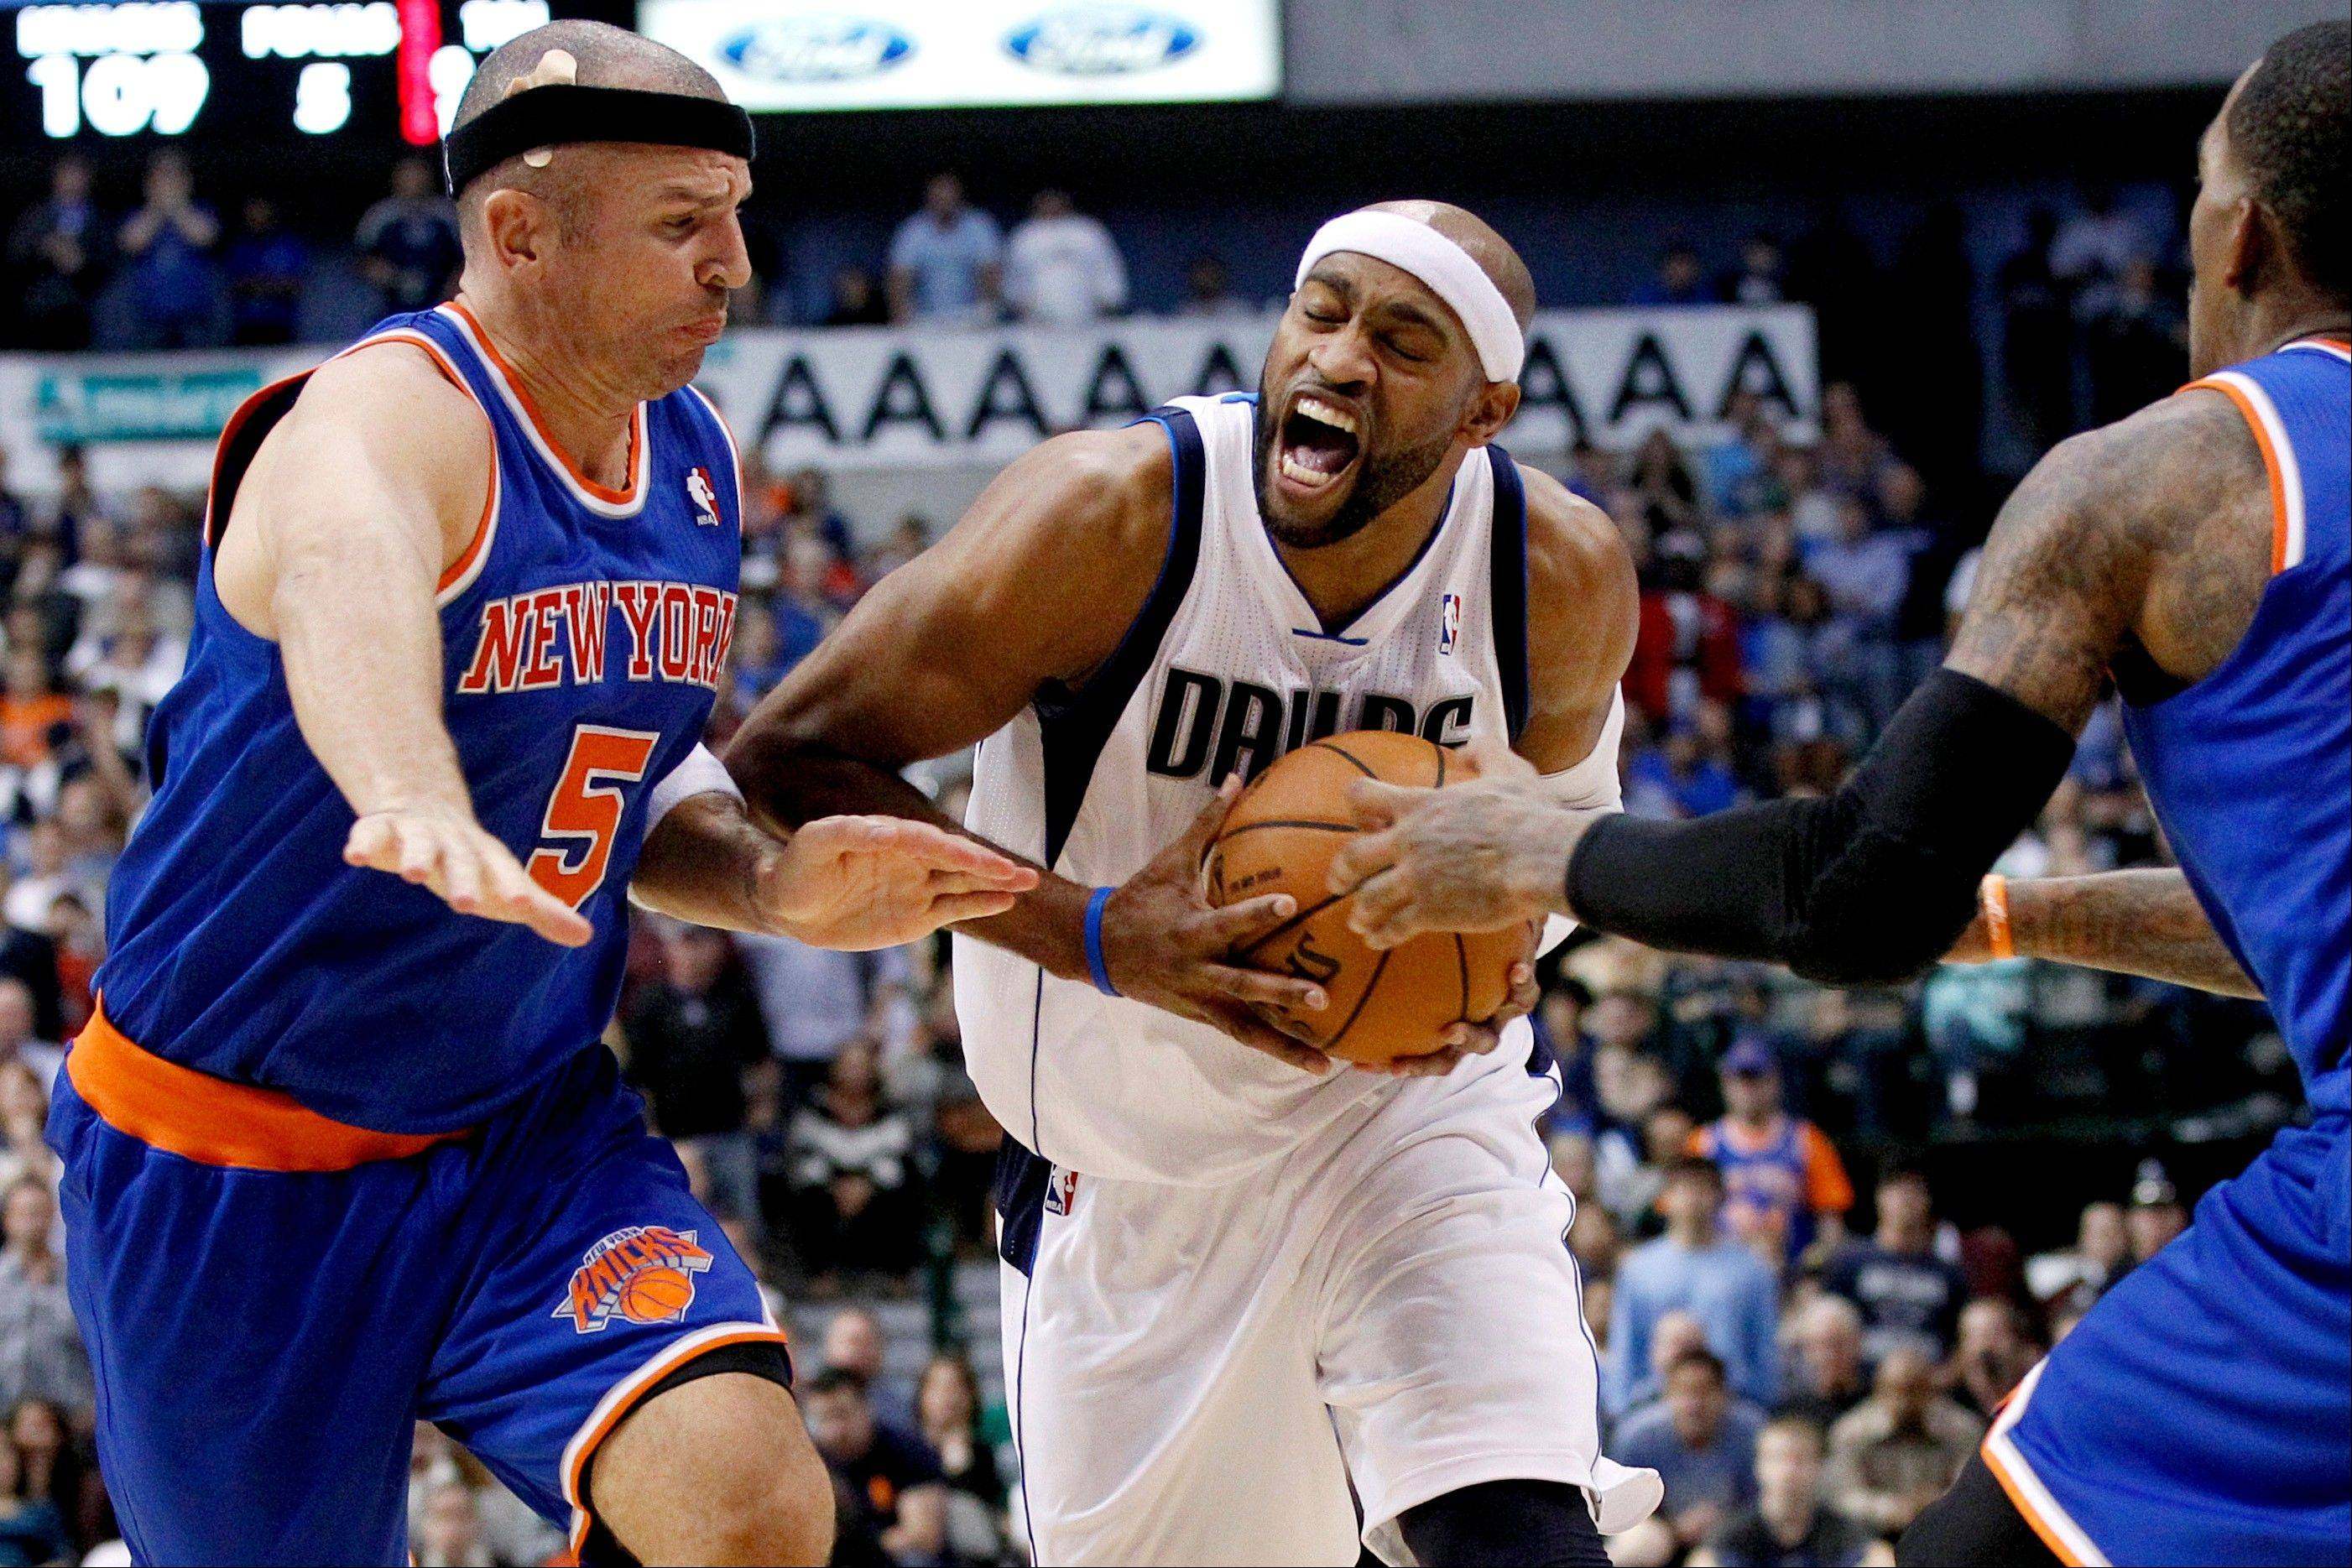 New York's Jason Kidd (5) and J.R. Smith (8) defend as the Mavericks' Vince Carter (25) attempts a drive to the basket in the second half Wednesday in Dallas. The Mavericks won 114-111.